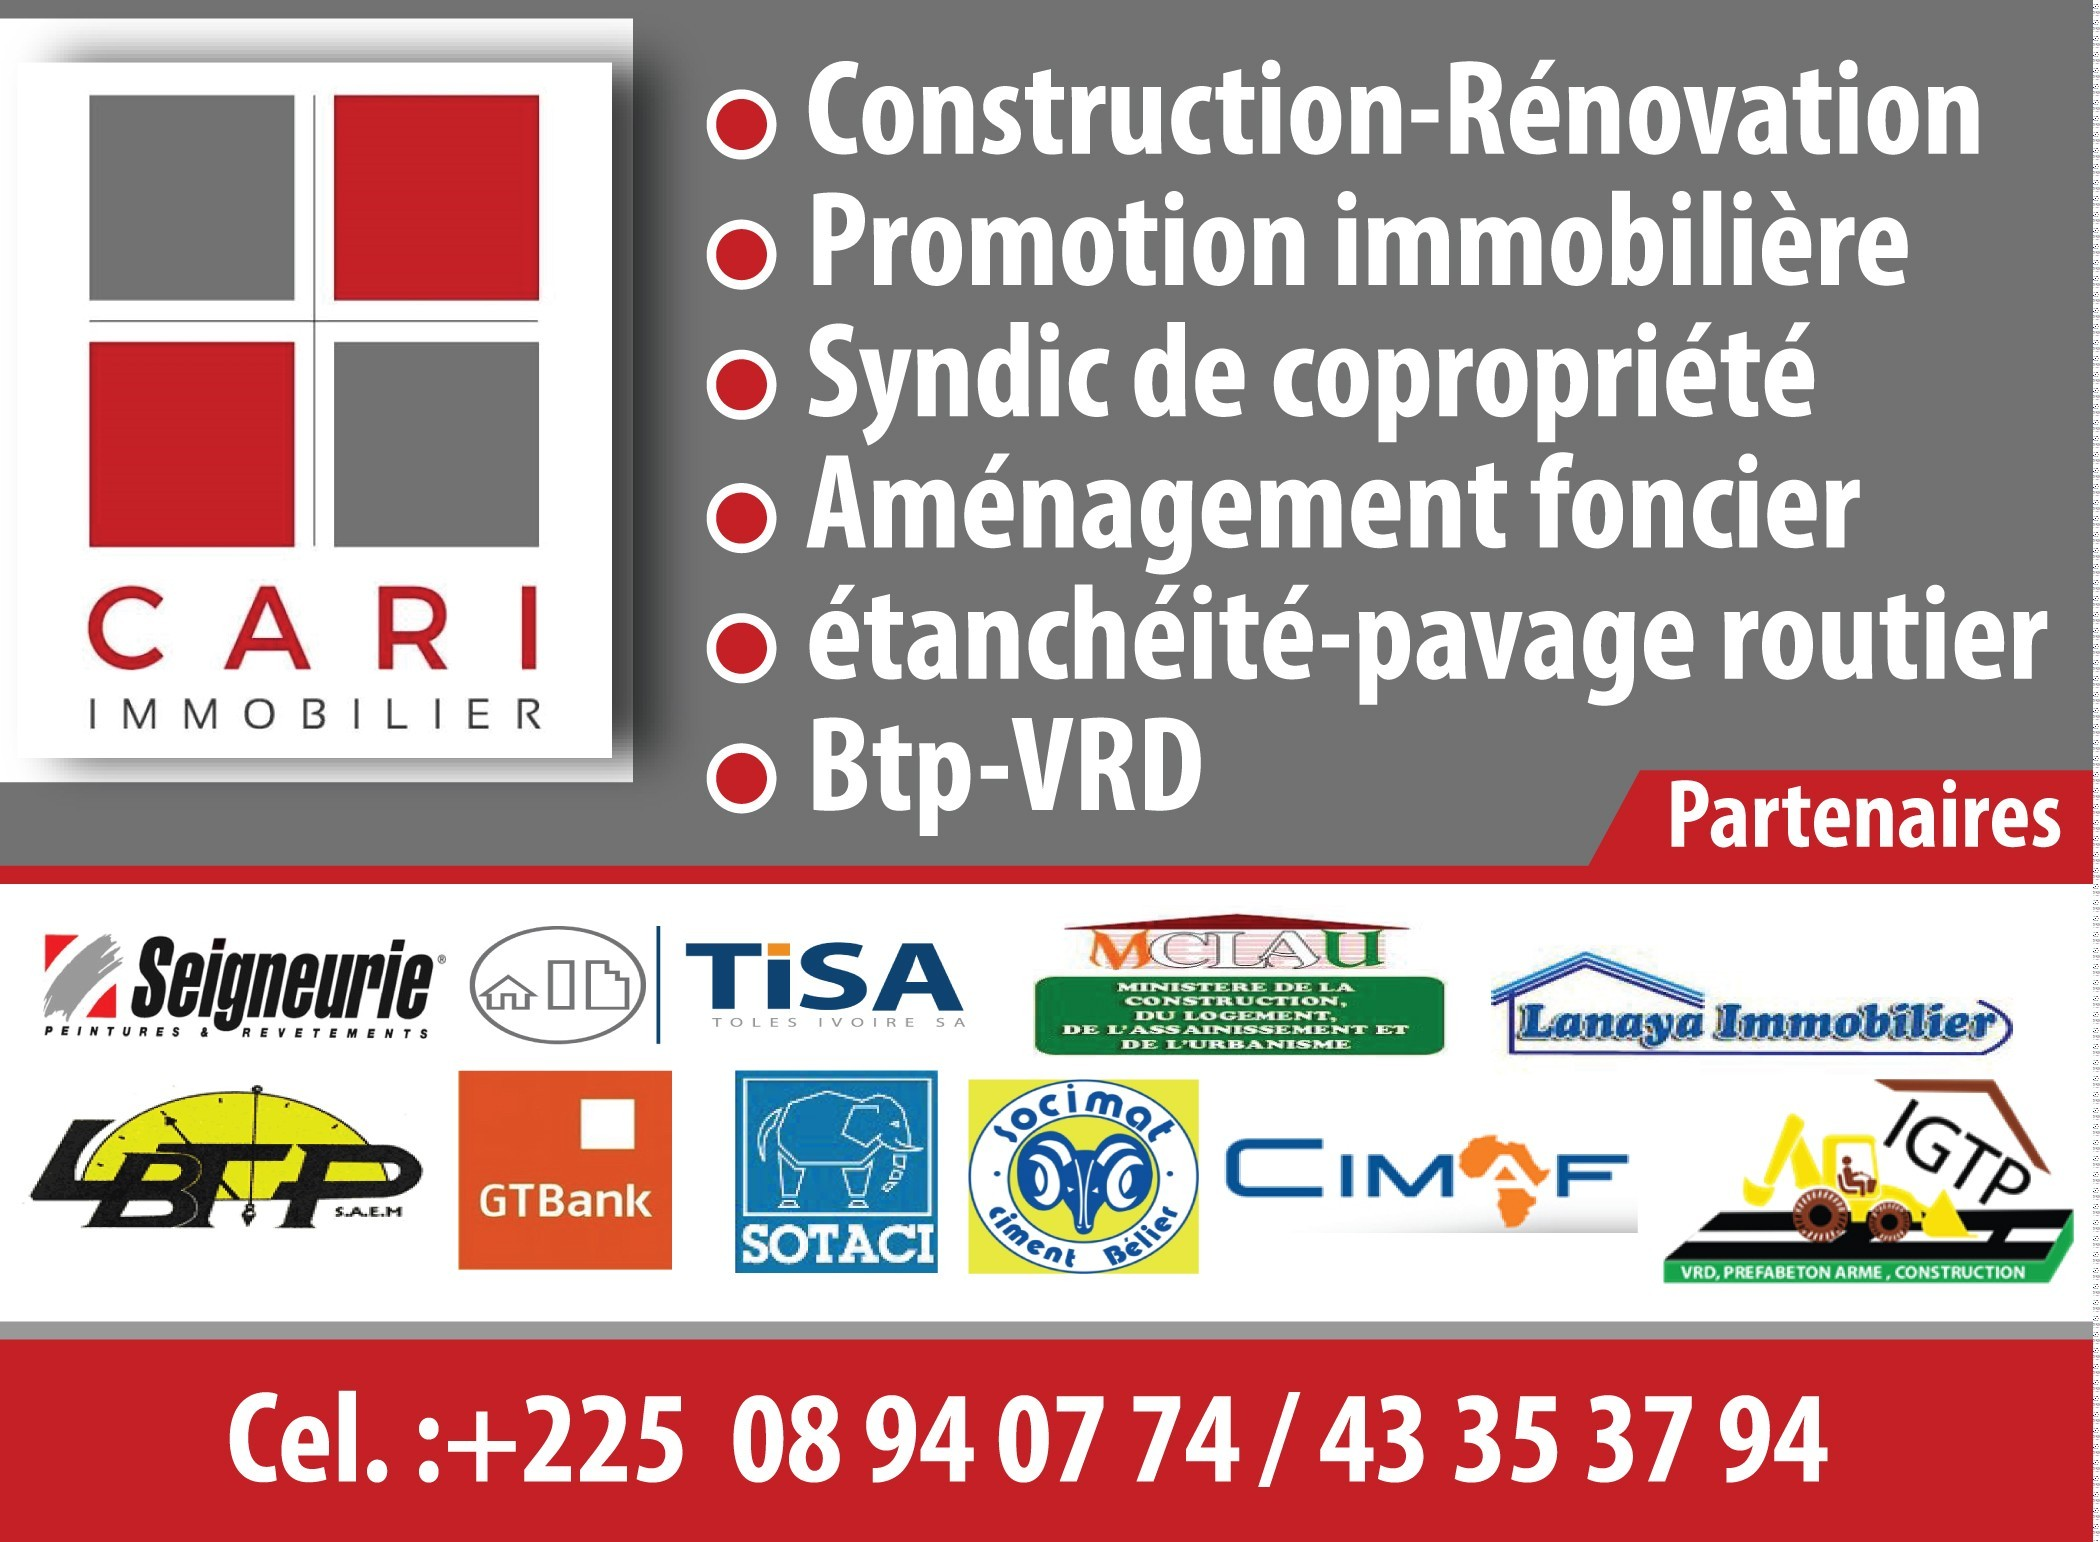 Construction Immobiliere Of Cari Compagnie Africaine De Realisation Immobiliere